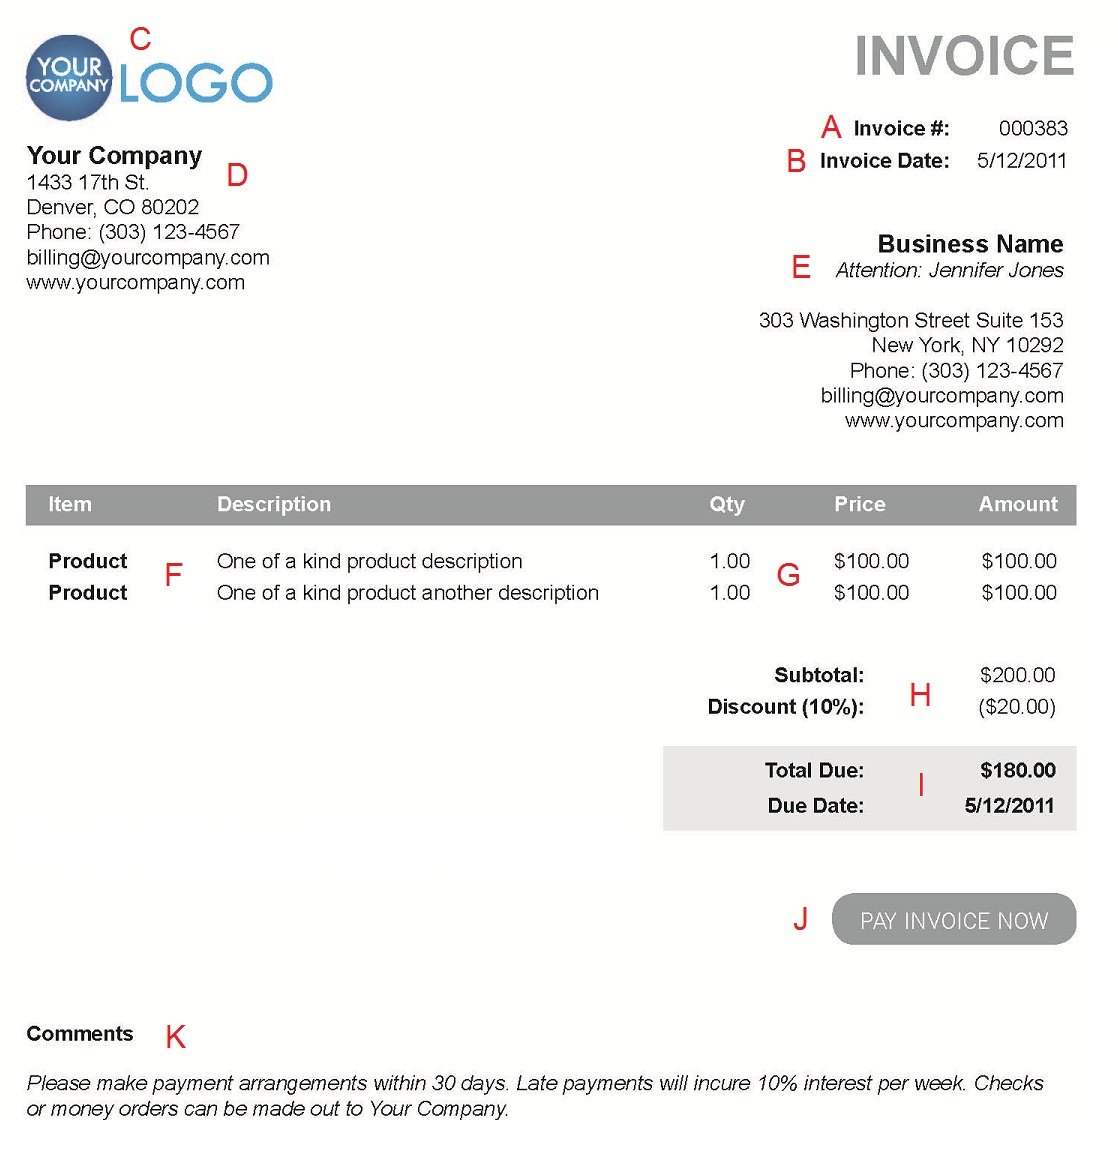 Coolmathgamesus  Prepossessing The  Different Sections Of An Electronic Payment Invoice With Magnificent A  With Nice Receipt Of Purchase Also Air Force Hand Receipt In Addition I Receipt Notice And Credit Card Receipts As Well As Receipt Storage Additionally Concurrent Receipt Chapter  From Paysimplecom With Coolmathgamesus  Magnificent The  Different Sections Of An Electronic Payment Invoice With Nice A  And Prepossessing Receipt Of Purchase Also Air Force Hand Receipt In Addition I Receipt Notice From Paysimplecom